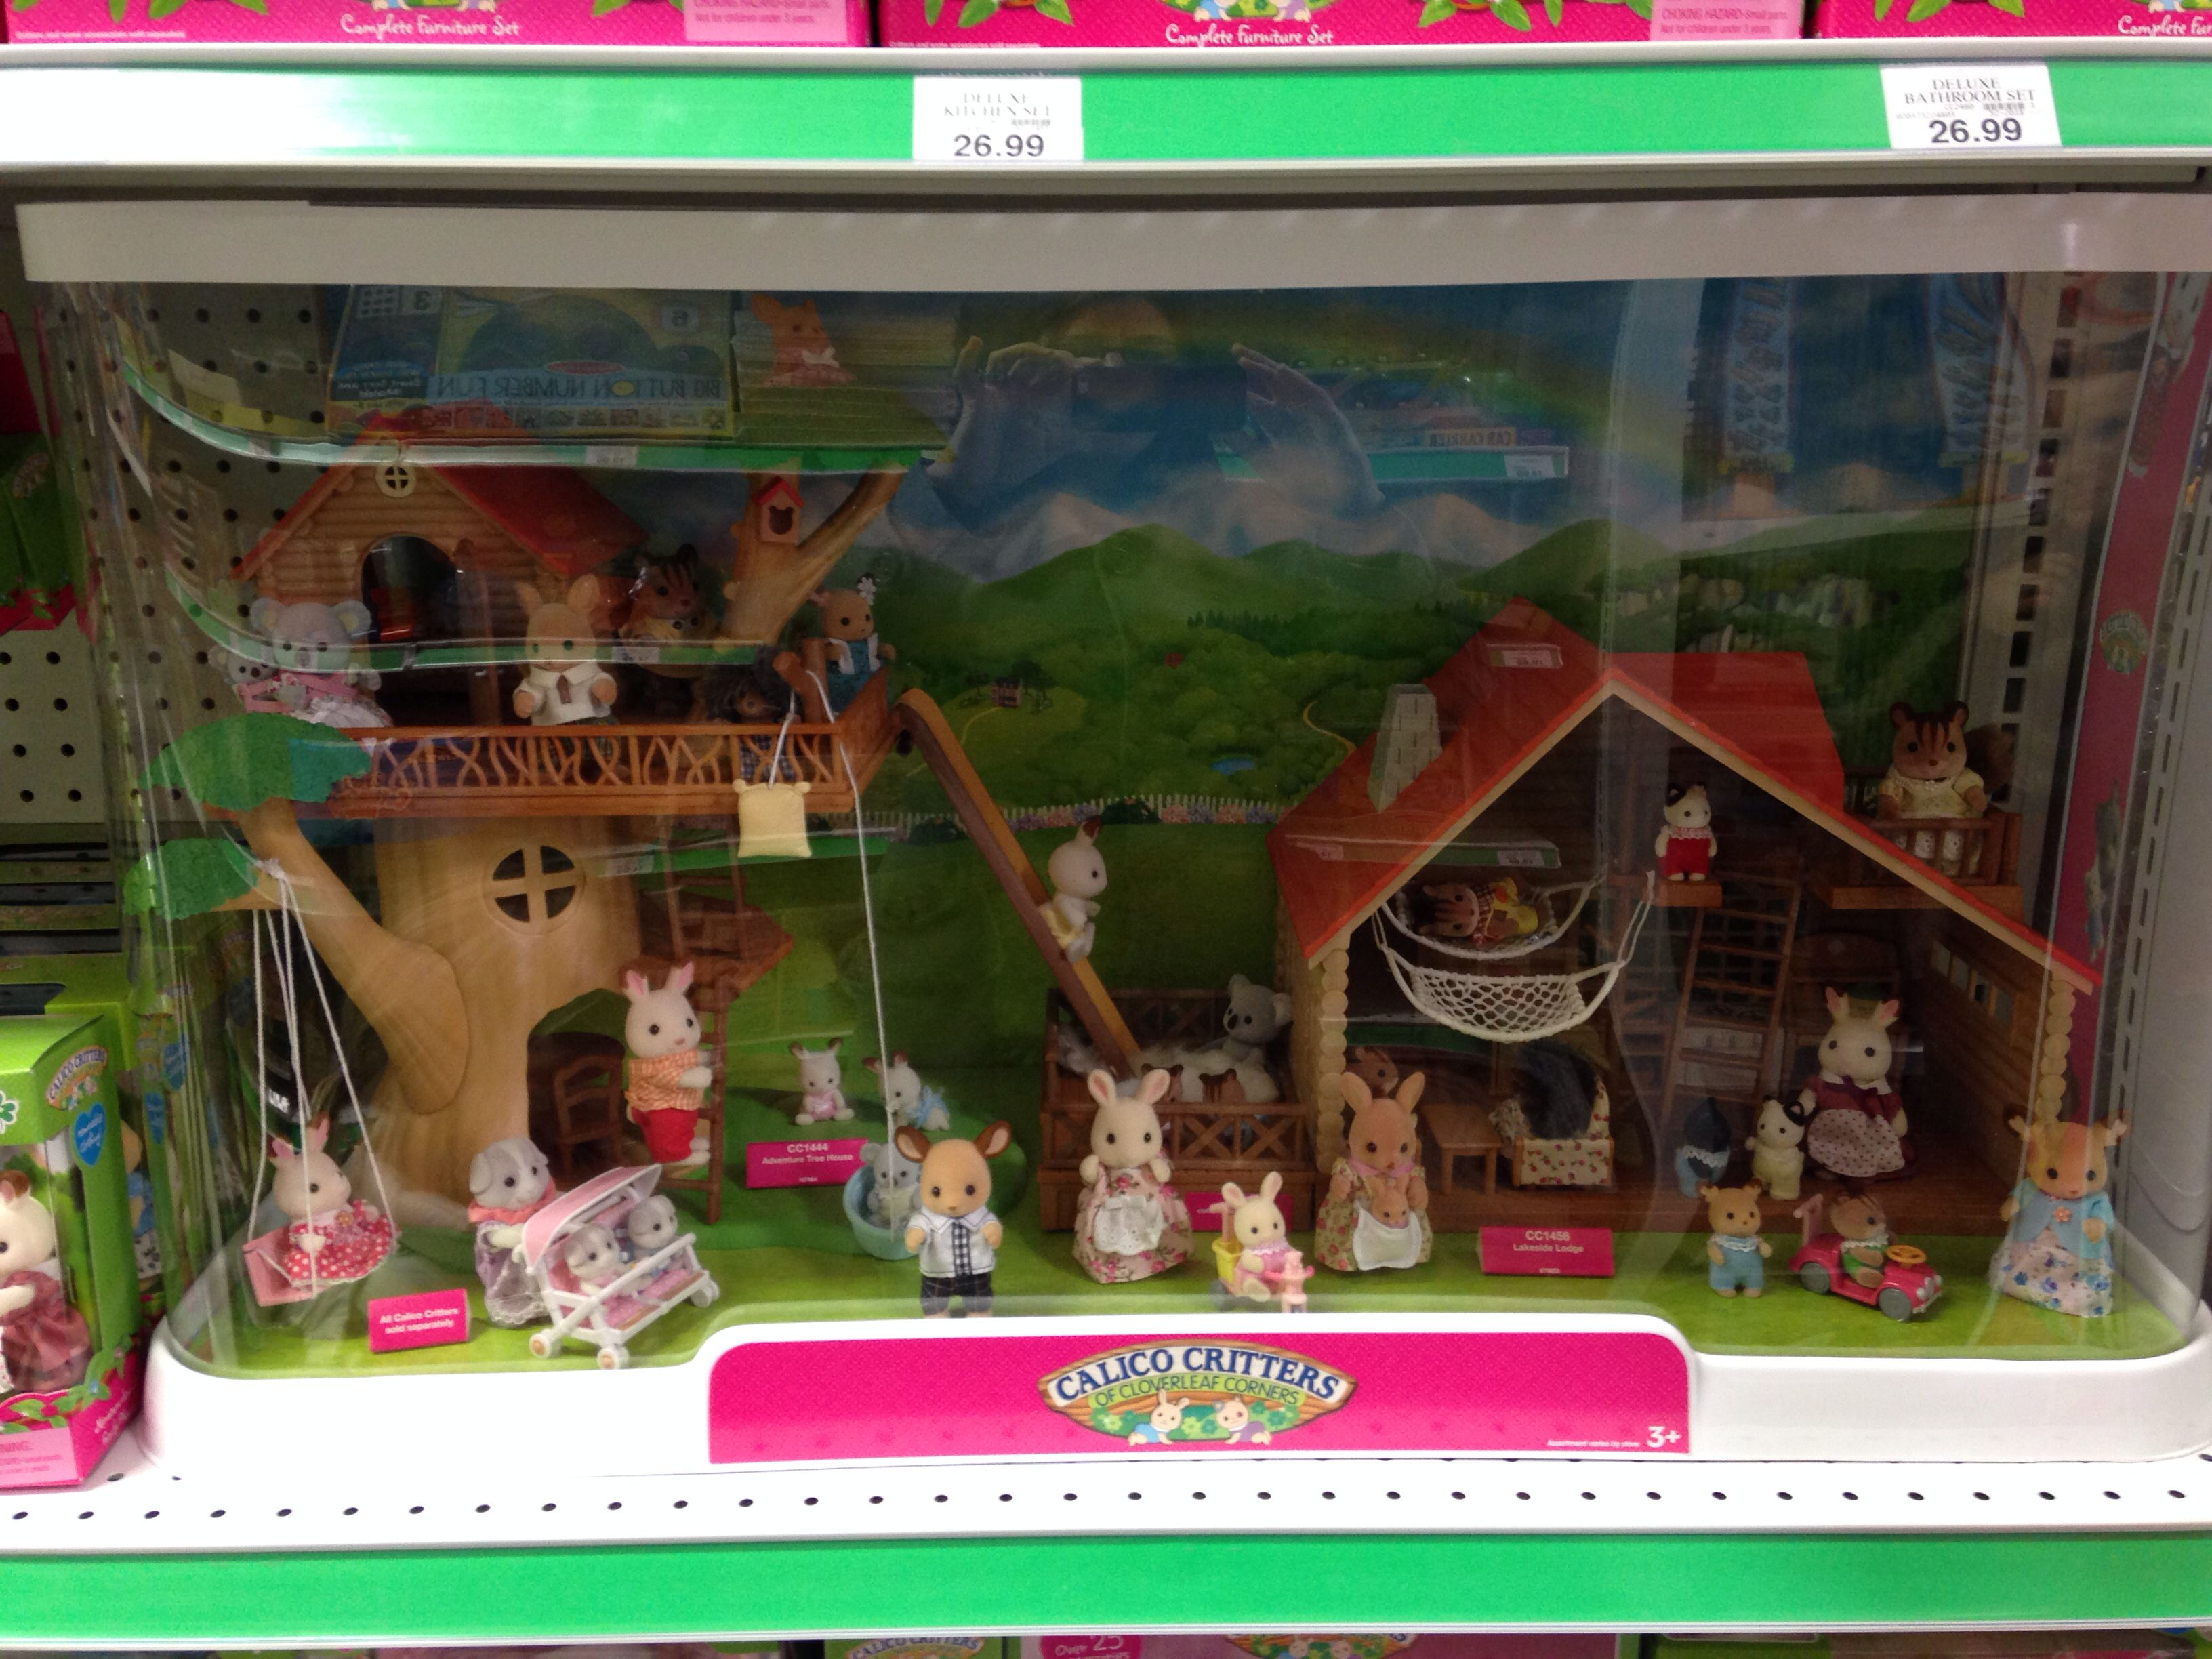 Find great deals on eBay for calico critters toys. Shop with confidence.